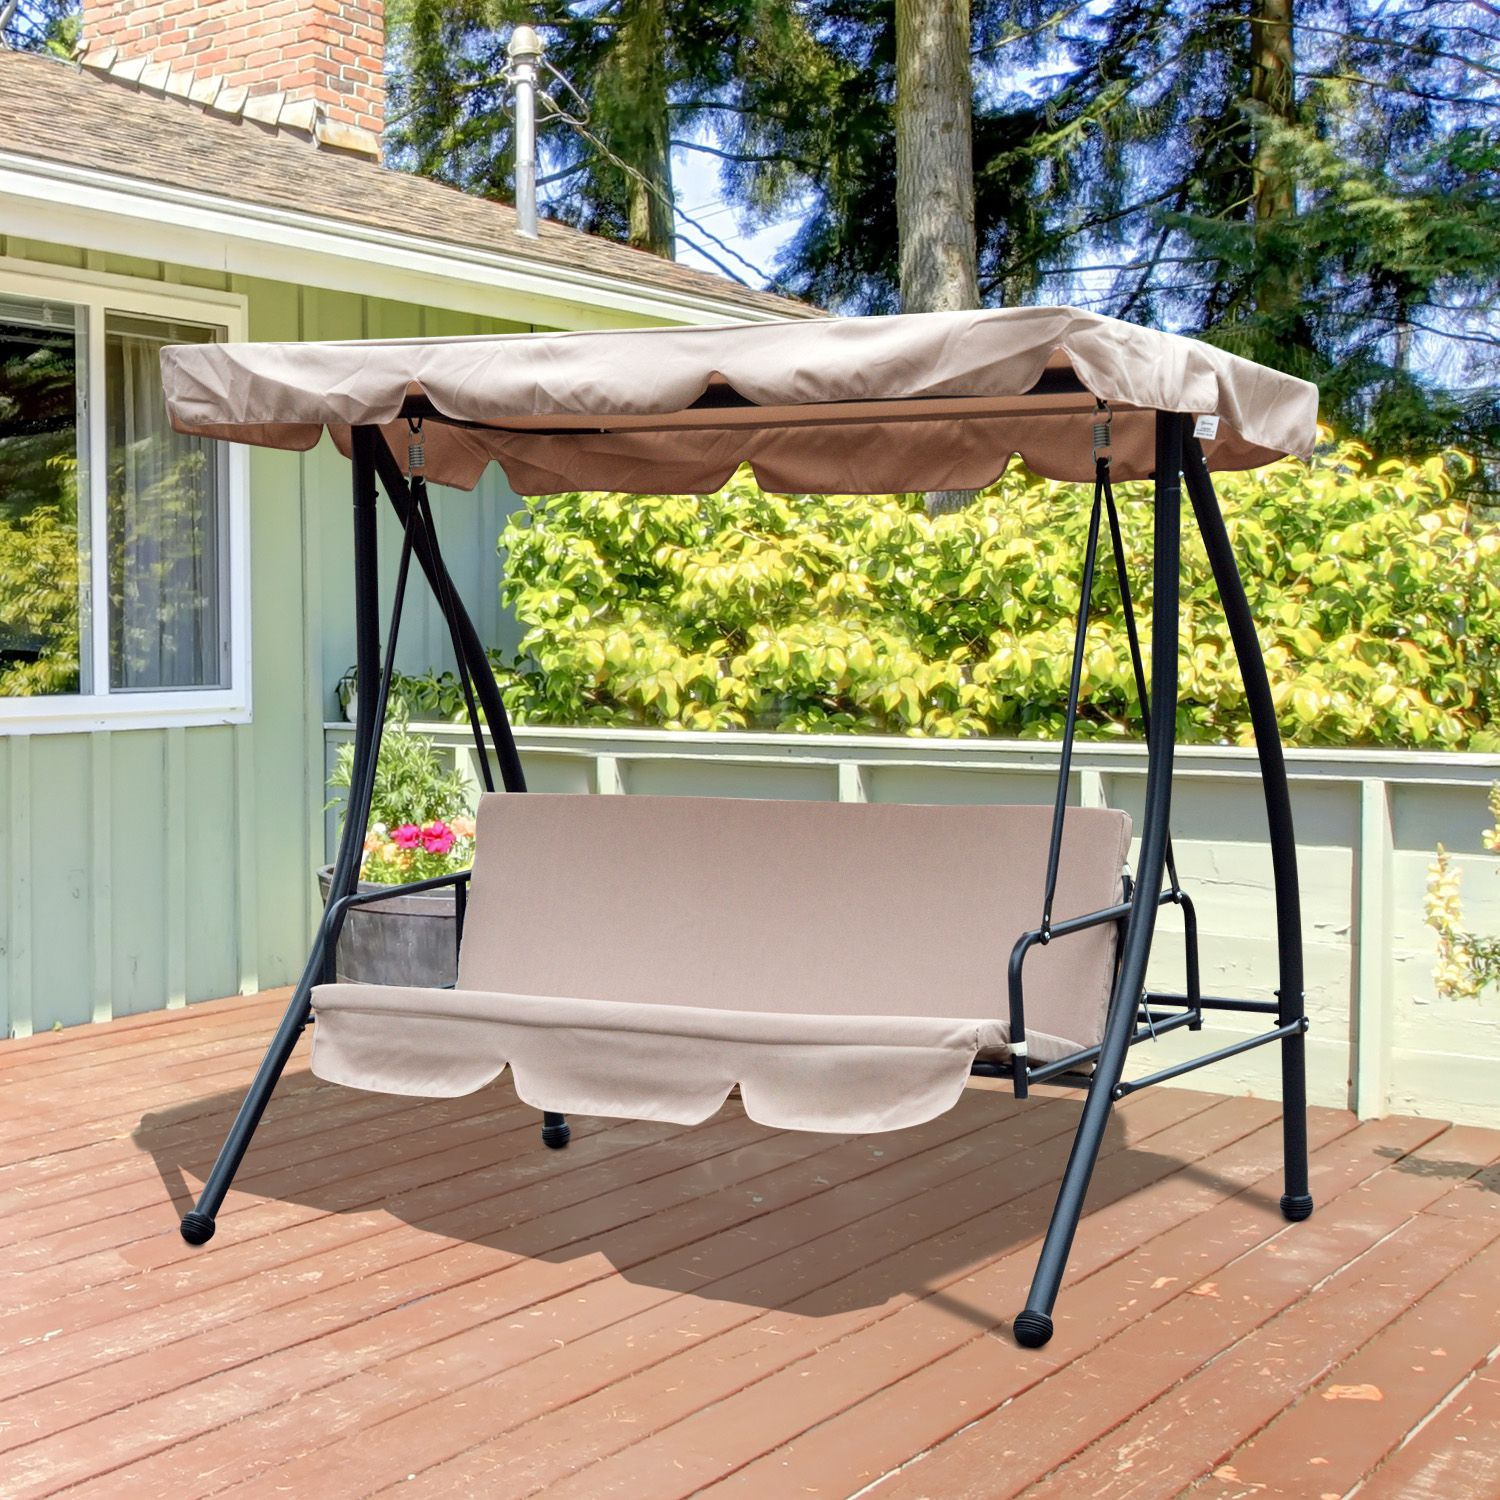 Outsunny Convertible Patio Swing Chair 3 Person Hammock Cushioned Portable  Outdoor With Tilt Canopy Beige Intended For 3 Seats Patio Canopy Swing Gliders Hammock Cushioned Steel Frame (Image 21 of 25)